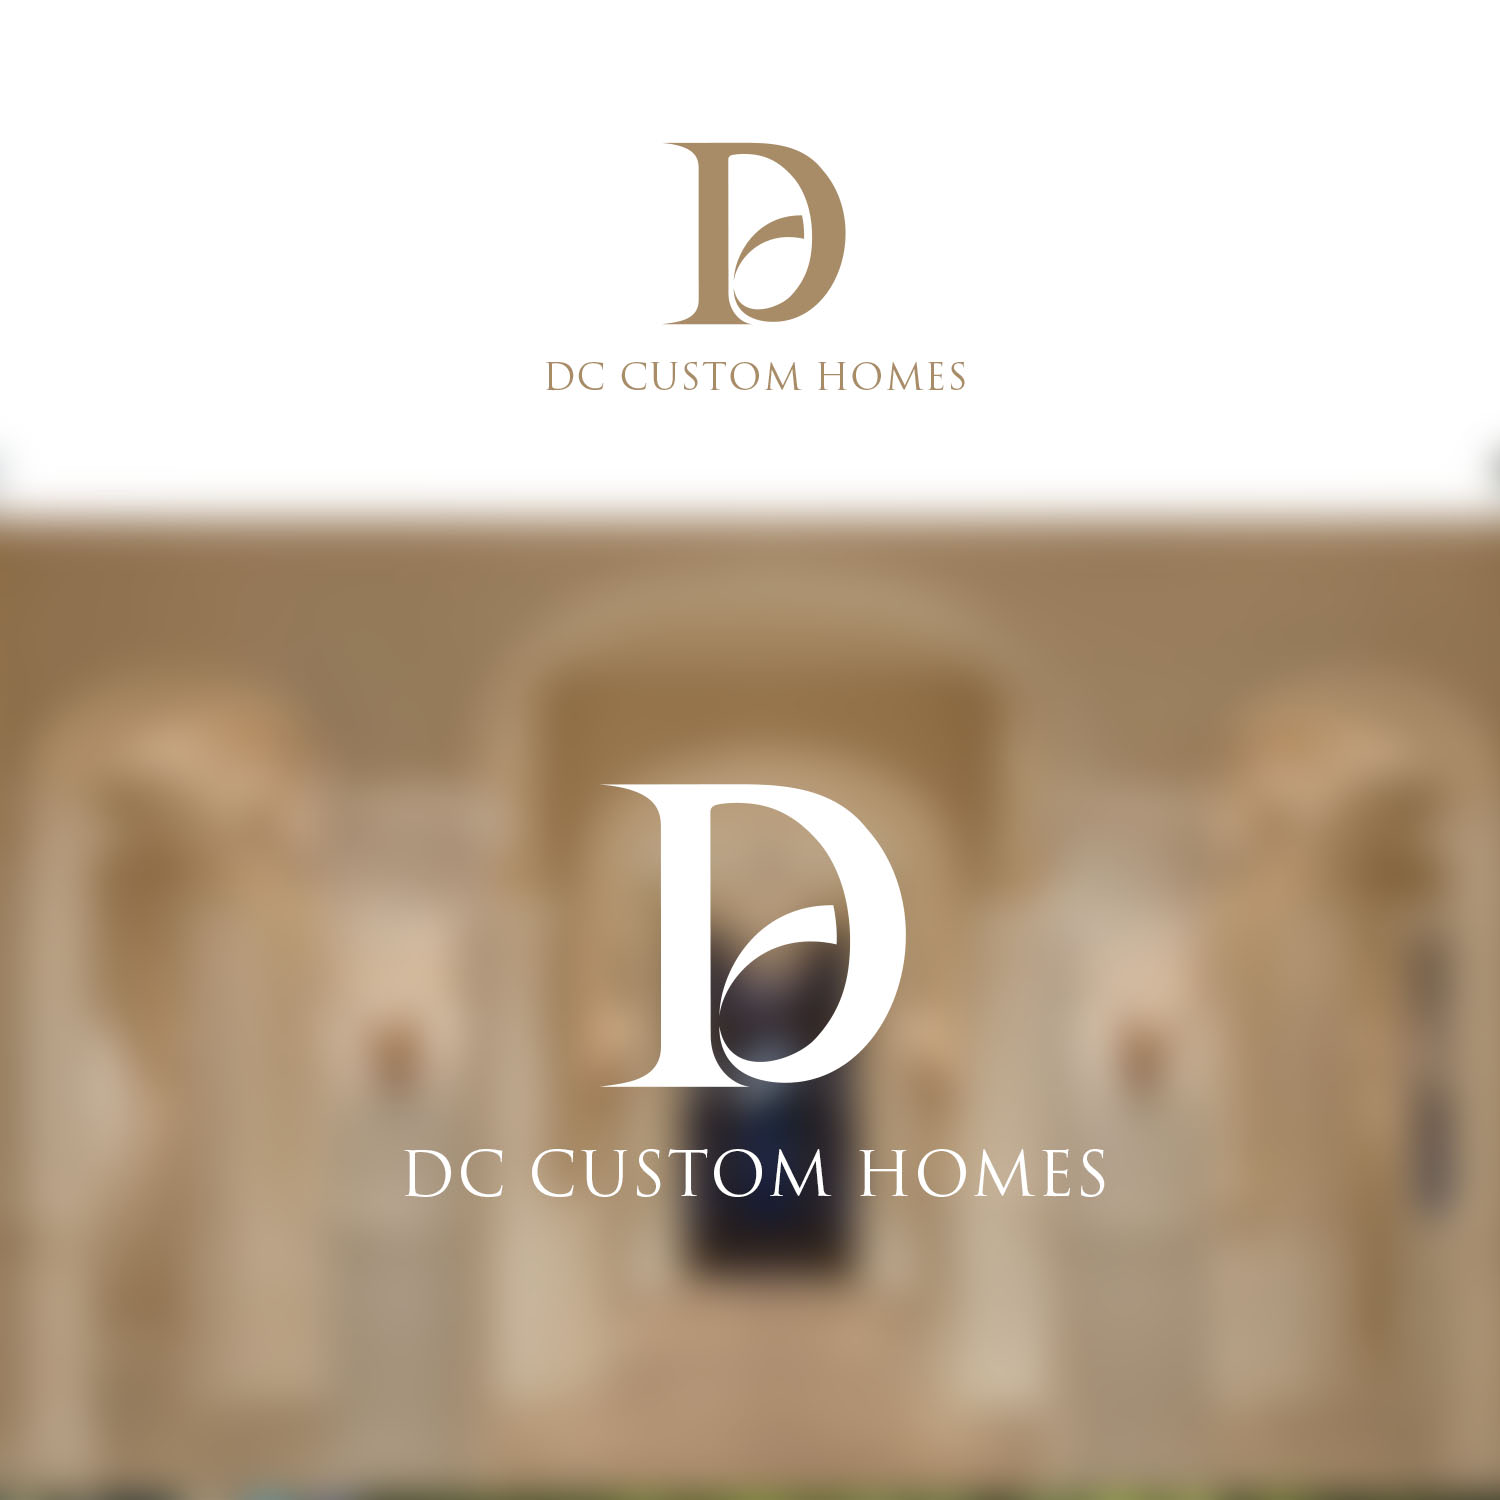 Logo Design by Private User - Entry No. 158 in the Logo Design Contest Creative Logo Design for DC Custom Homes.